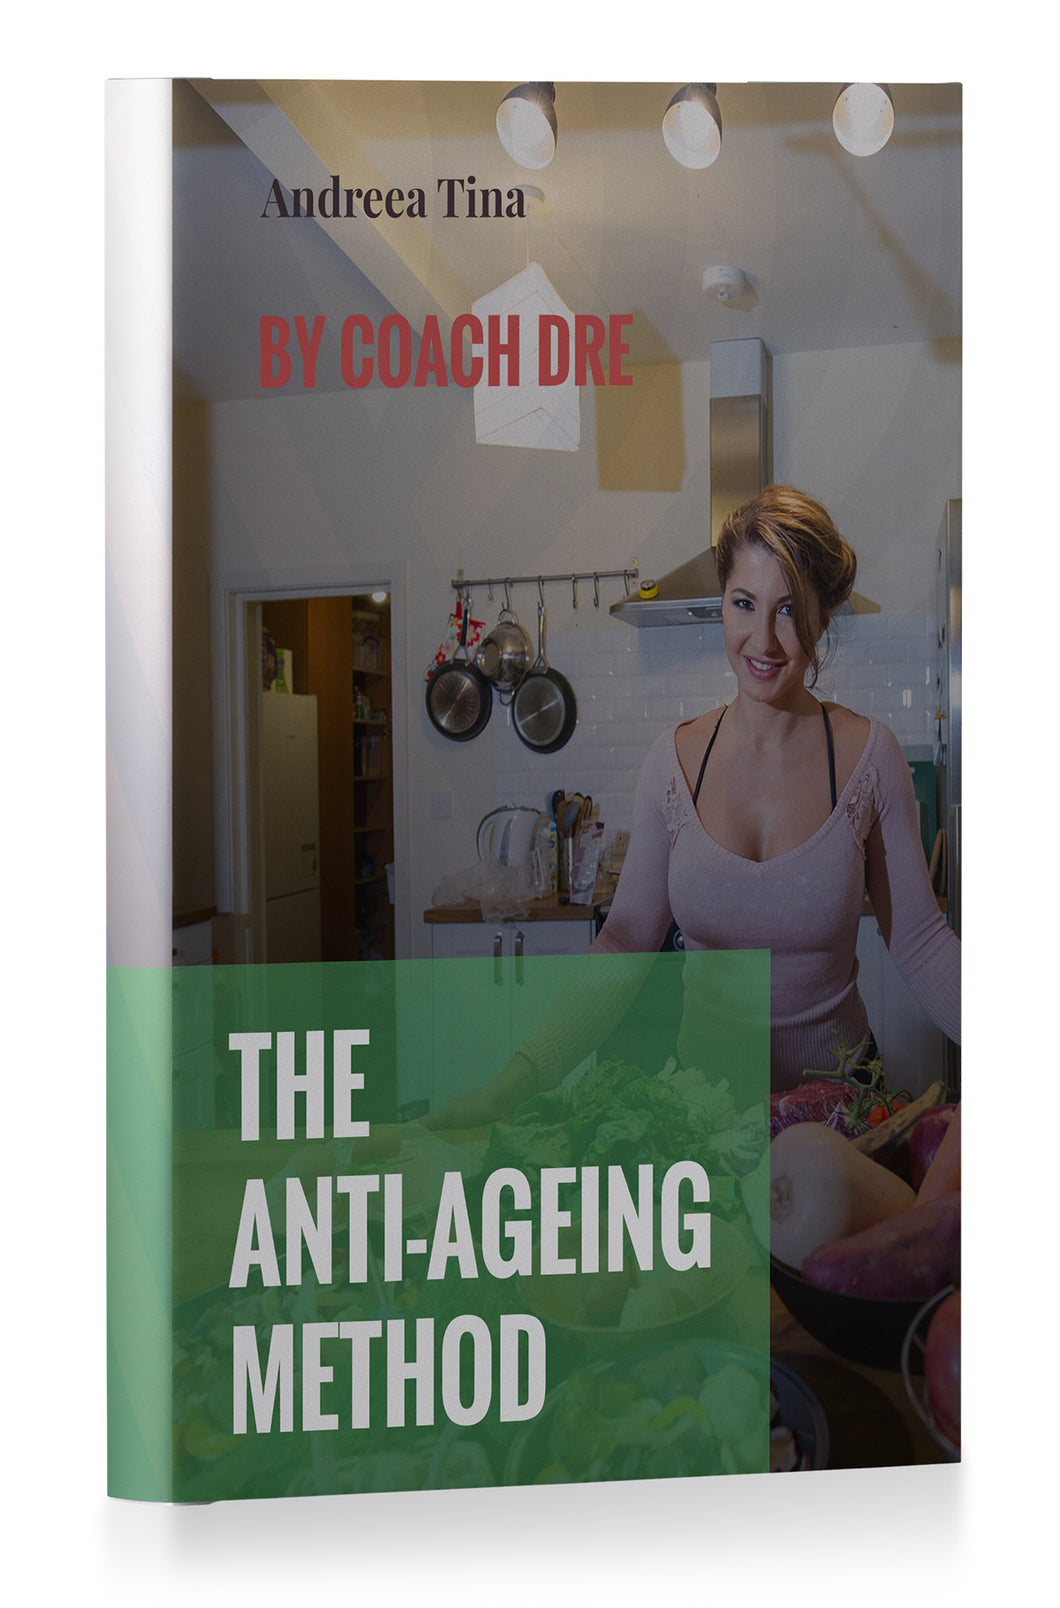 THE ANTI-AGEING METHOD by Coach Dre